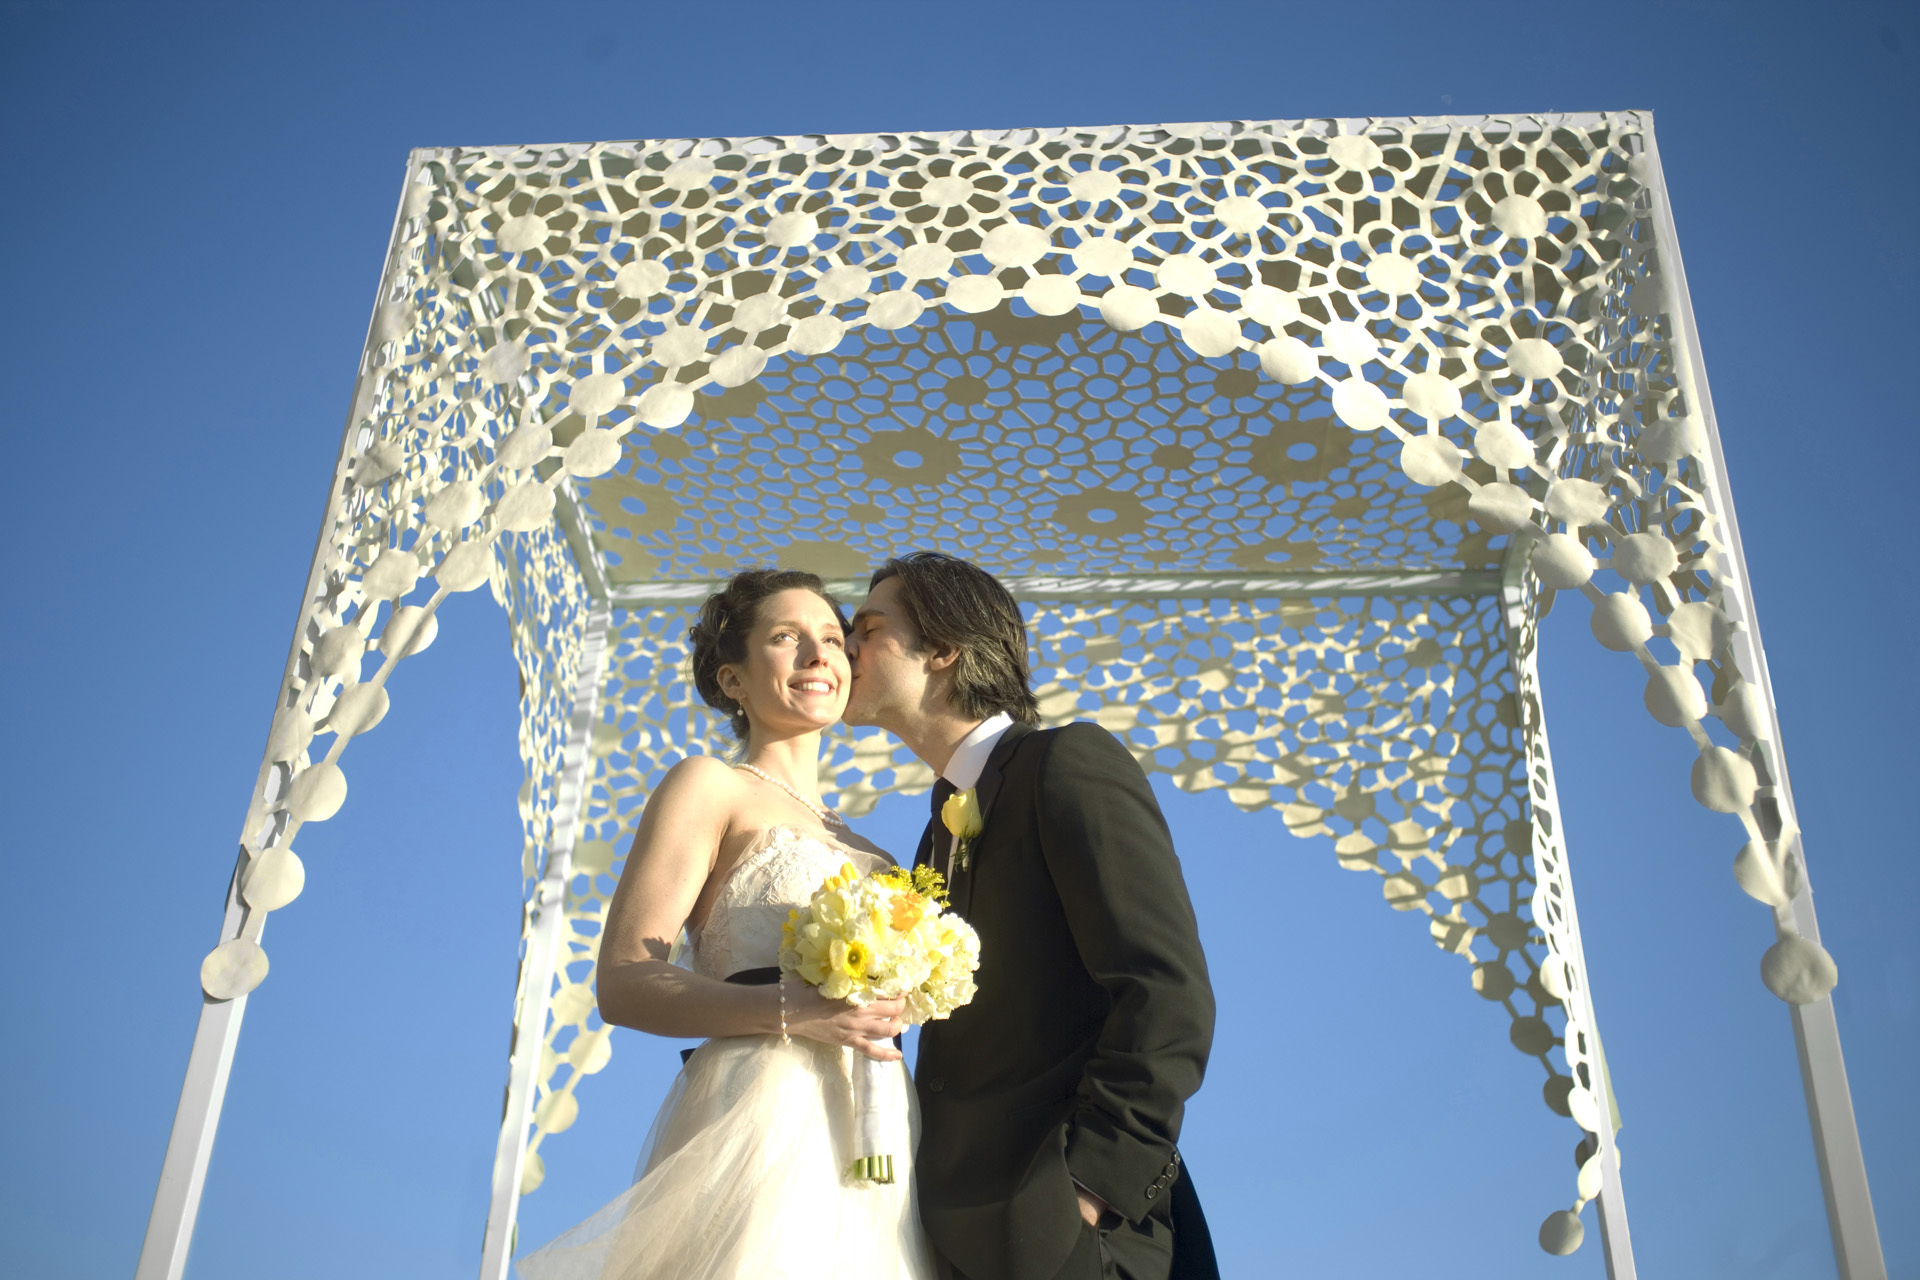 A chuppah or any nonJewish marriage canopy transforms the space below into